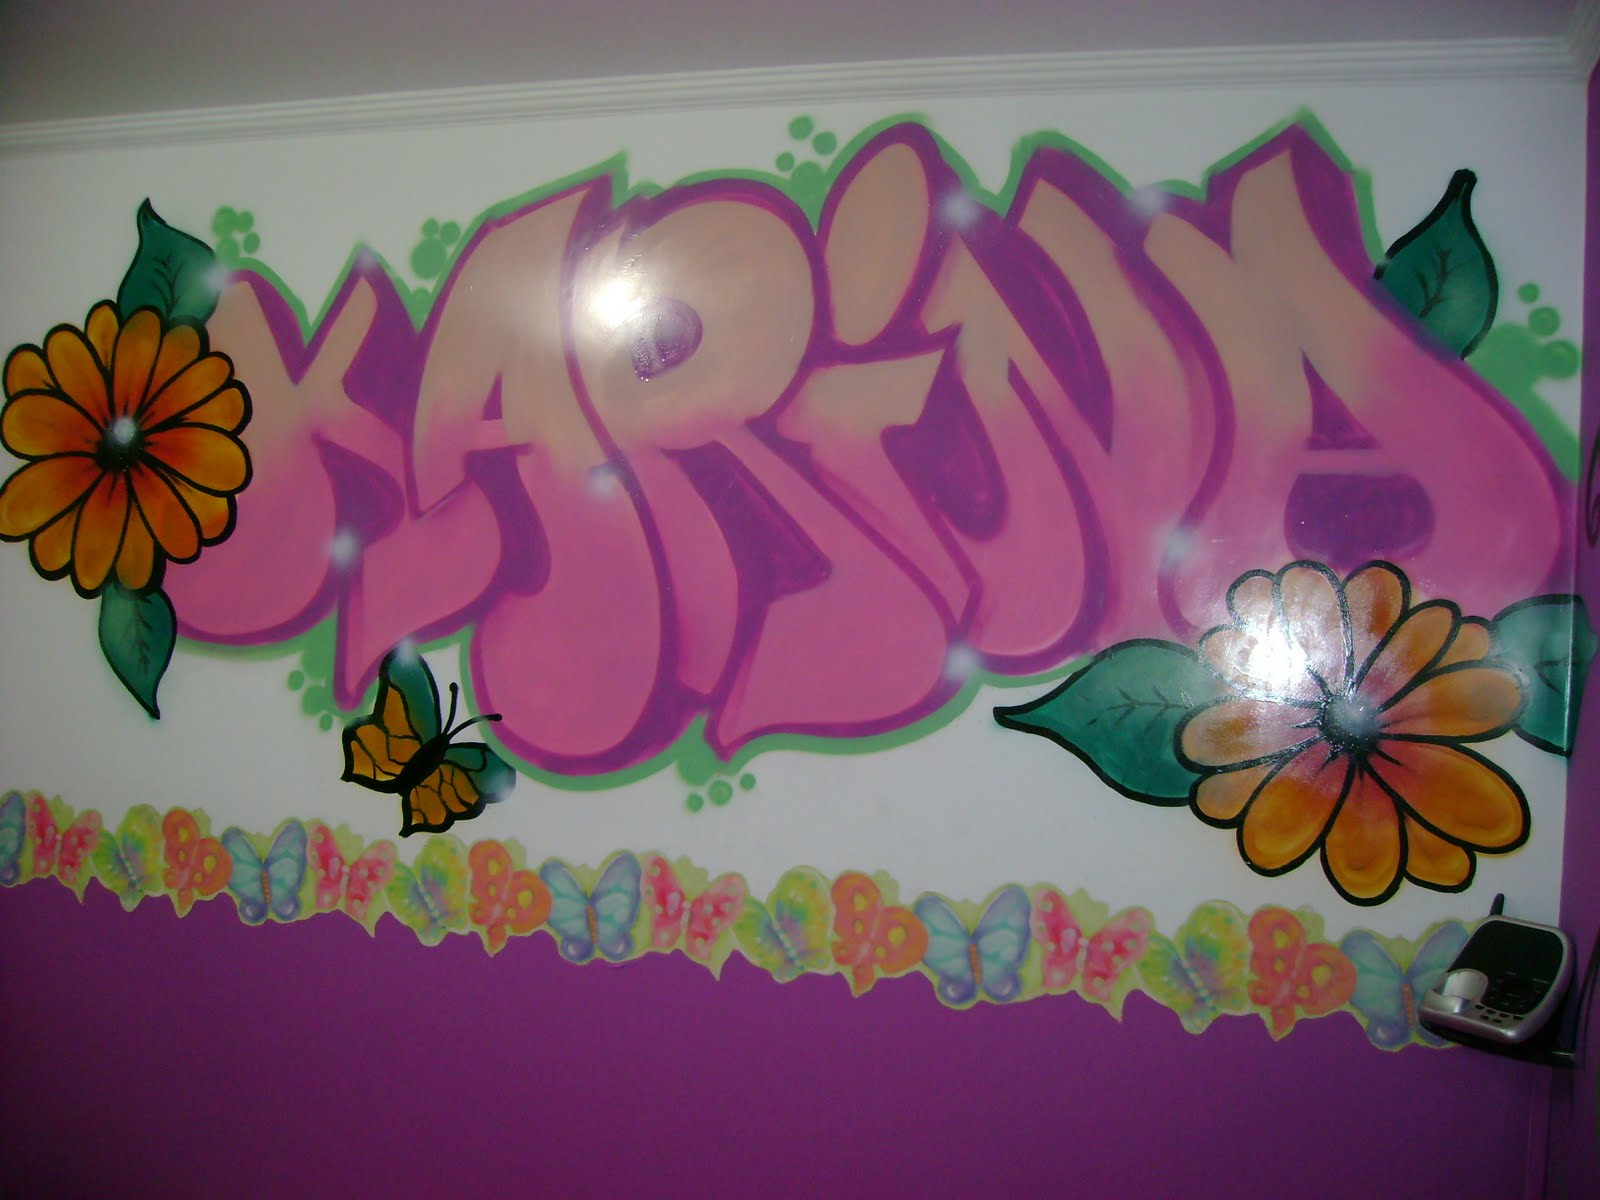 The Name Karina in Graffiti